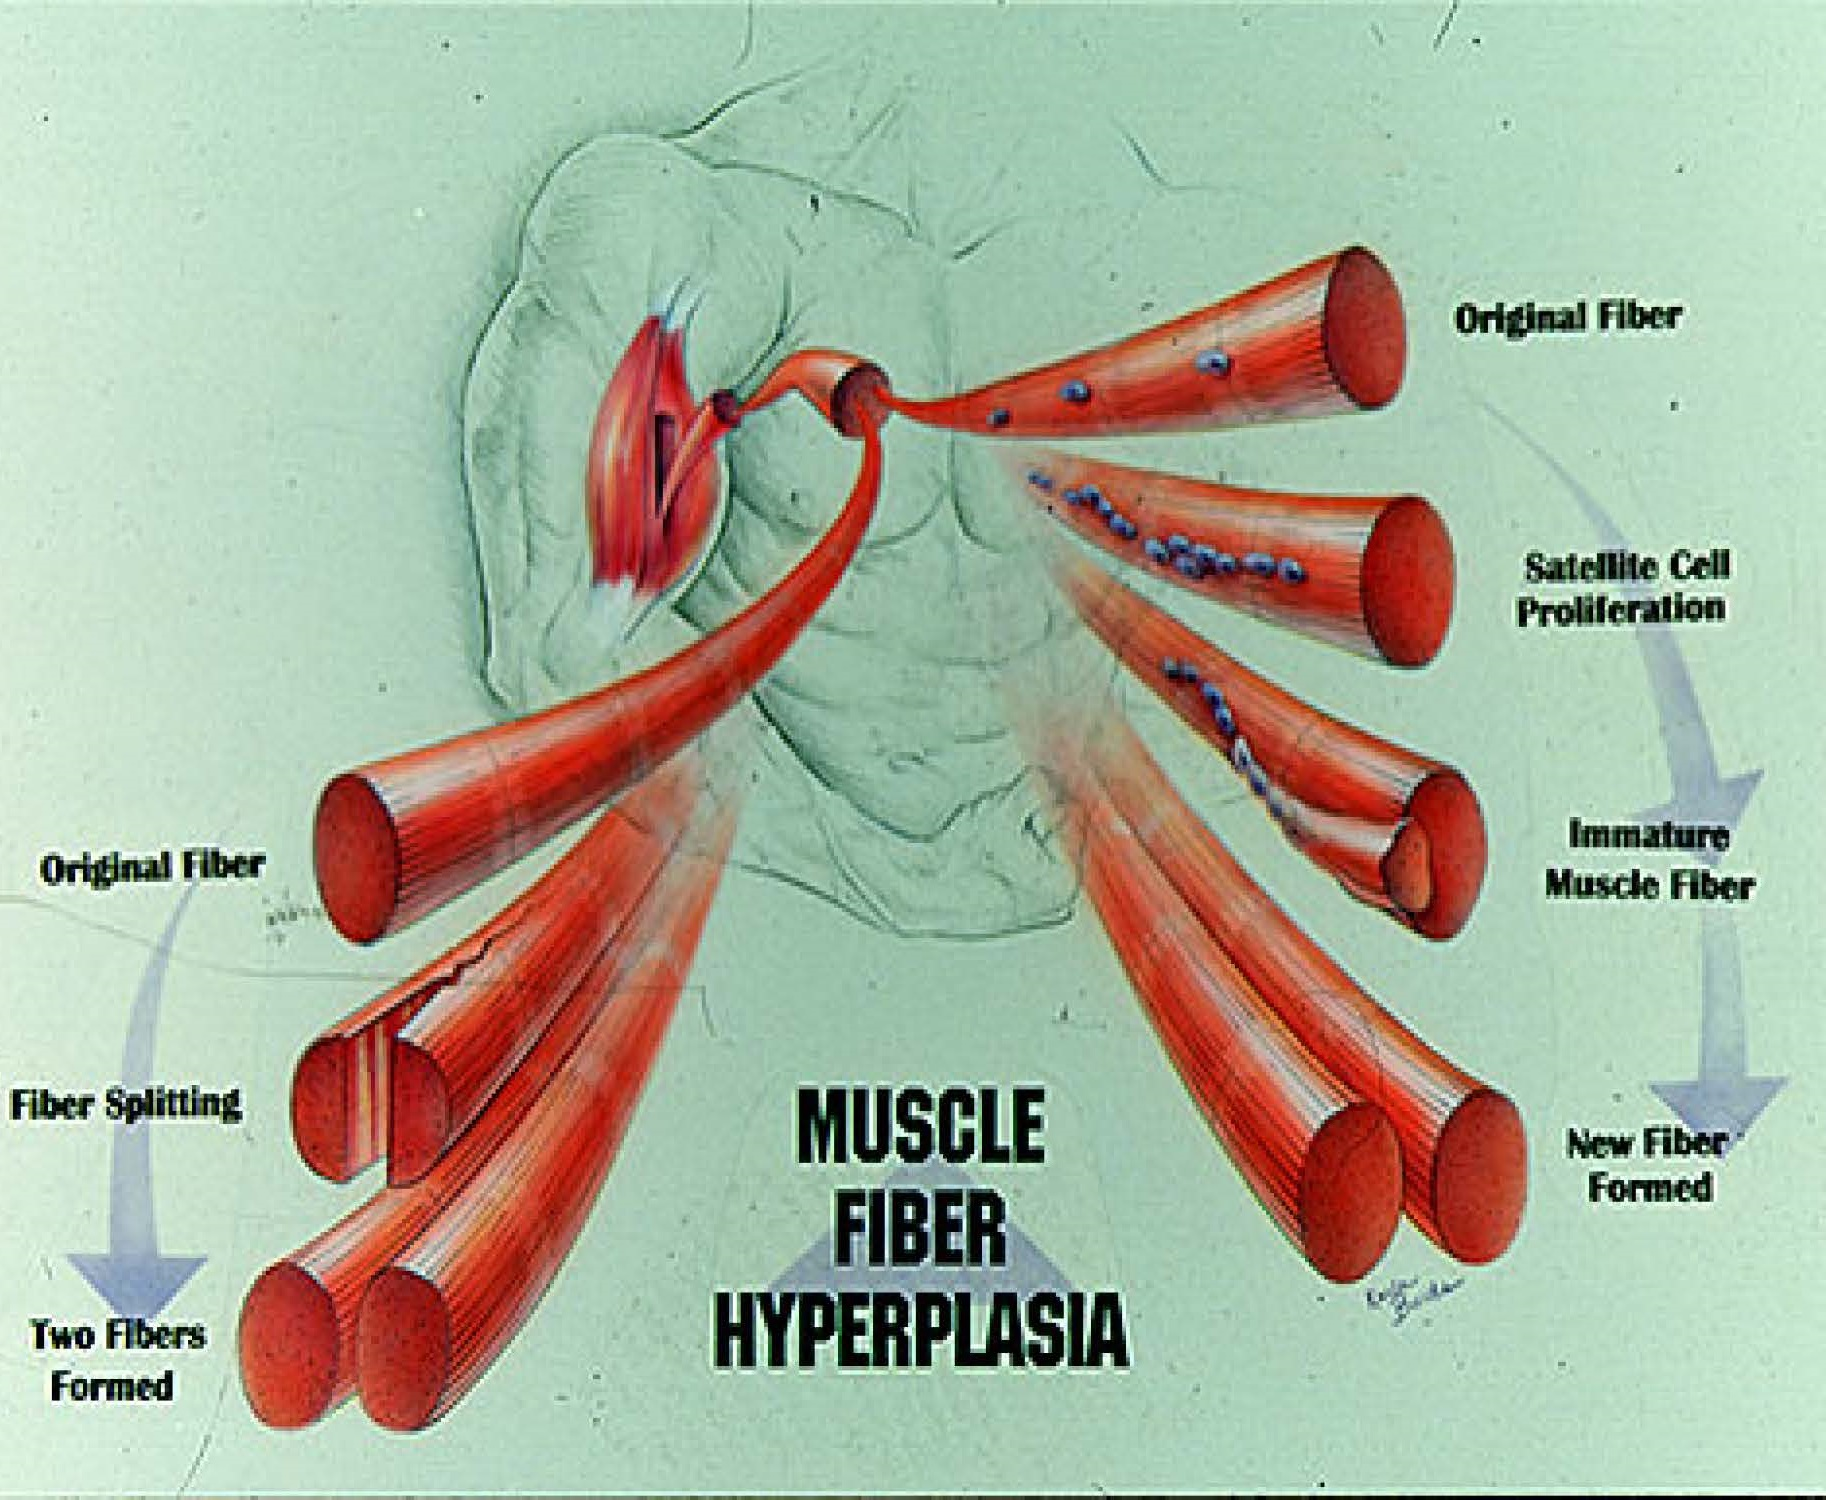 skeletal muscle fiber hyperplasia | the issn scoop, Muscles